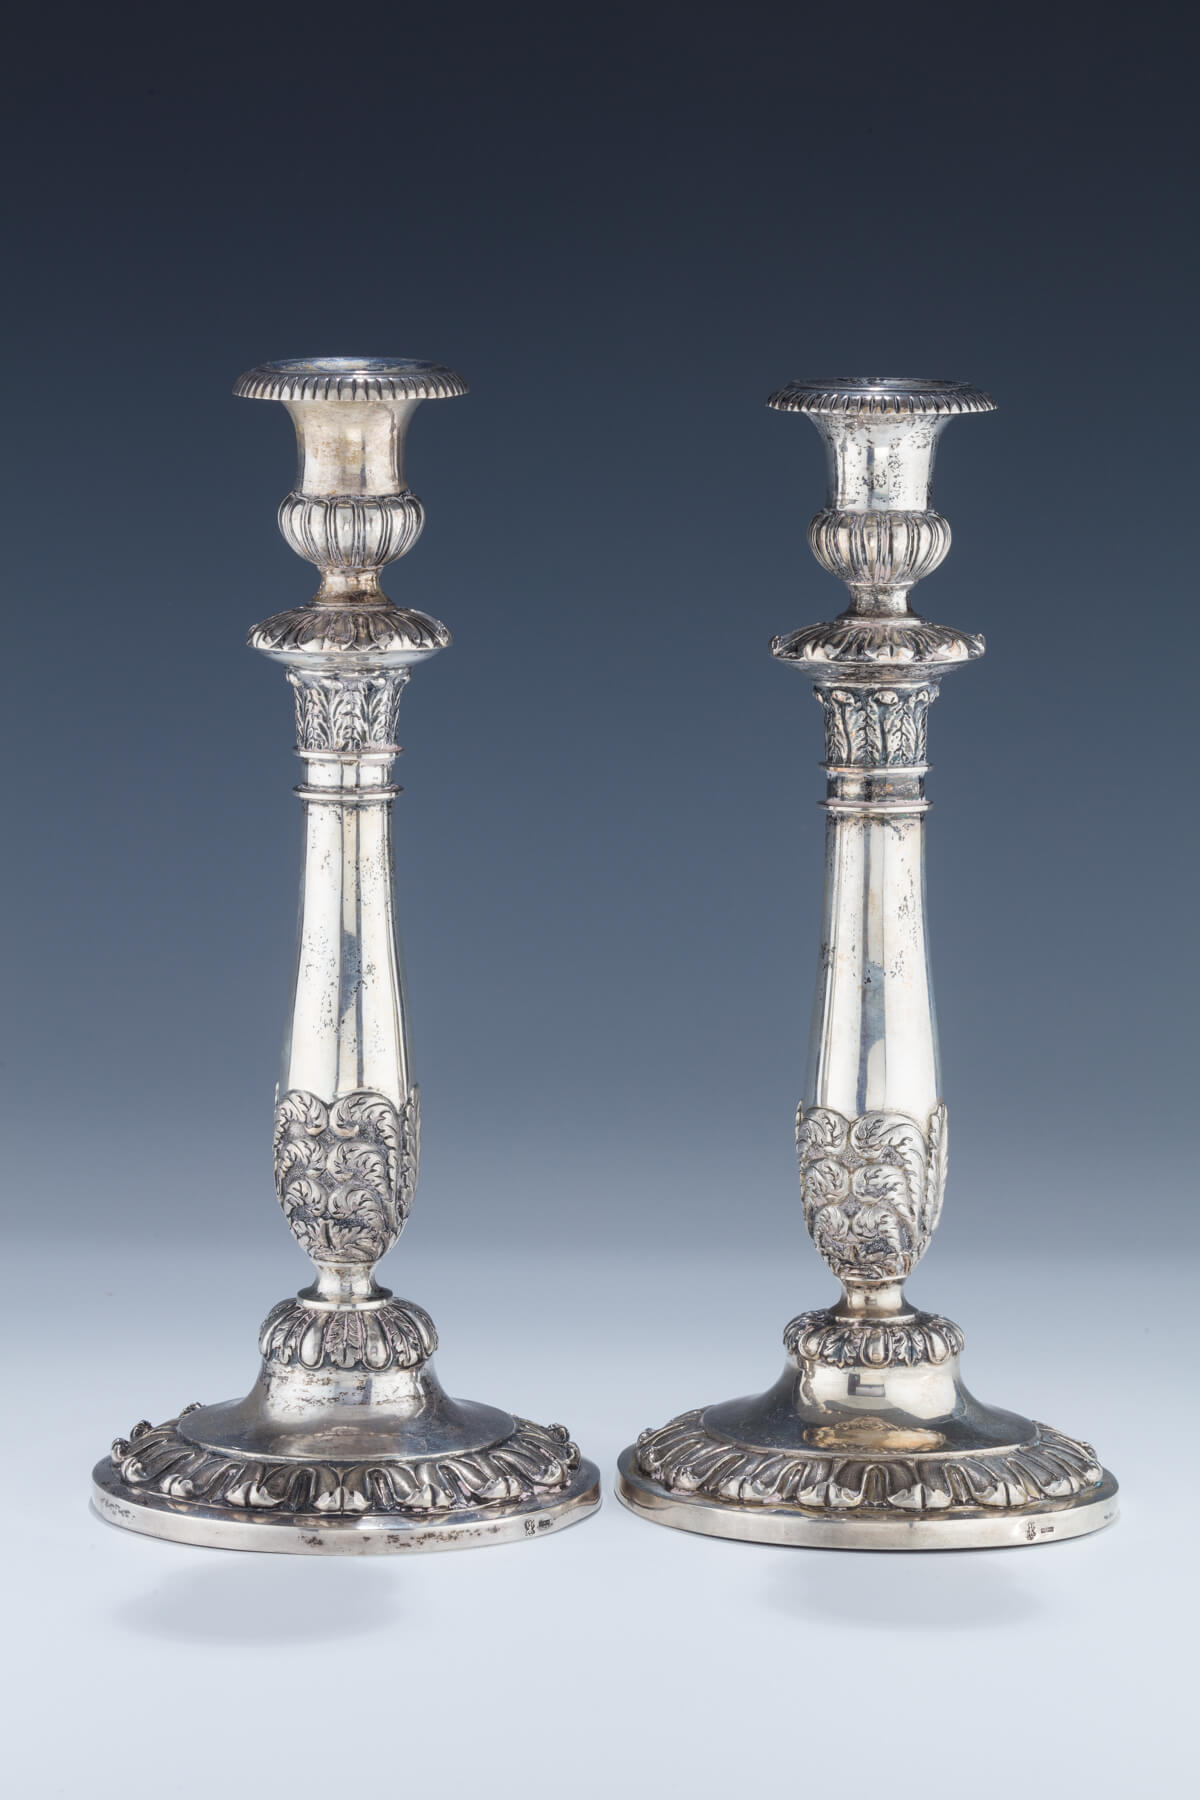 013. A Pair of Early Silver Candlesticks